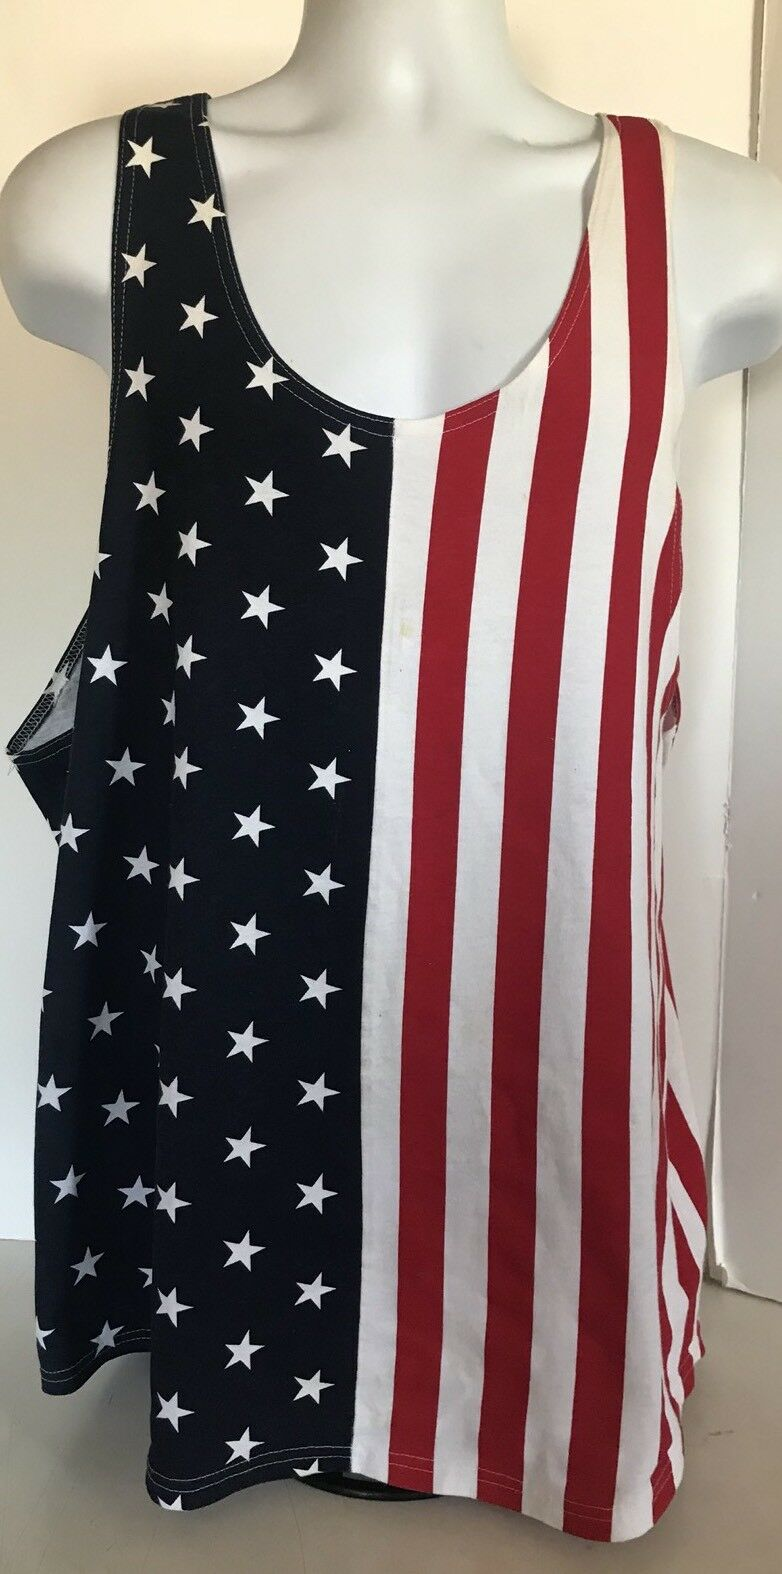 Vintage 80s Reelax USA Flag Tank Top T-Shirt Größe XL Muscle Tee Venice Beach